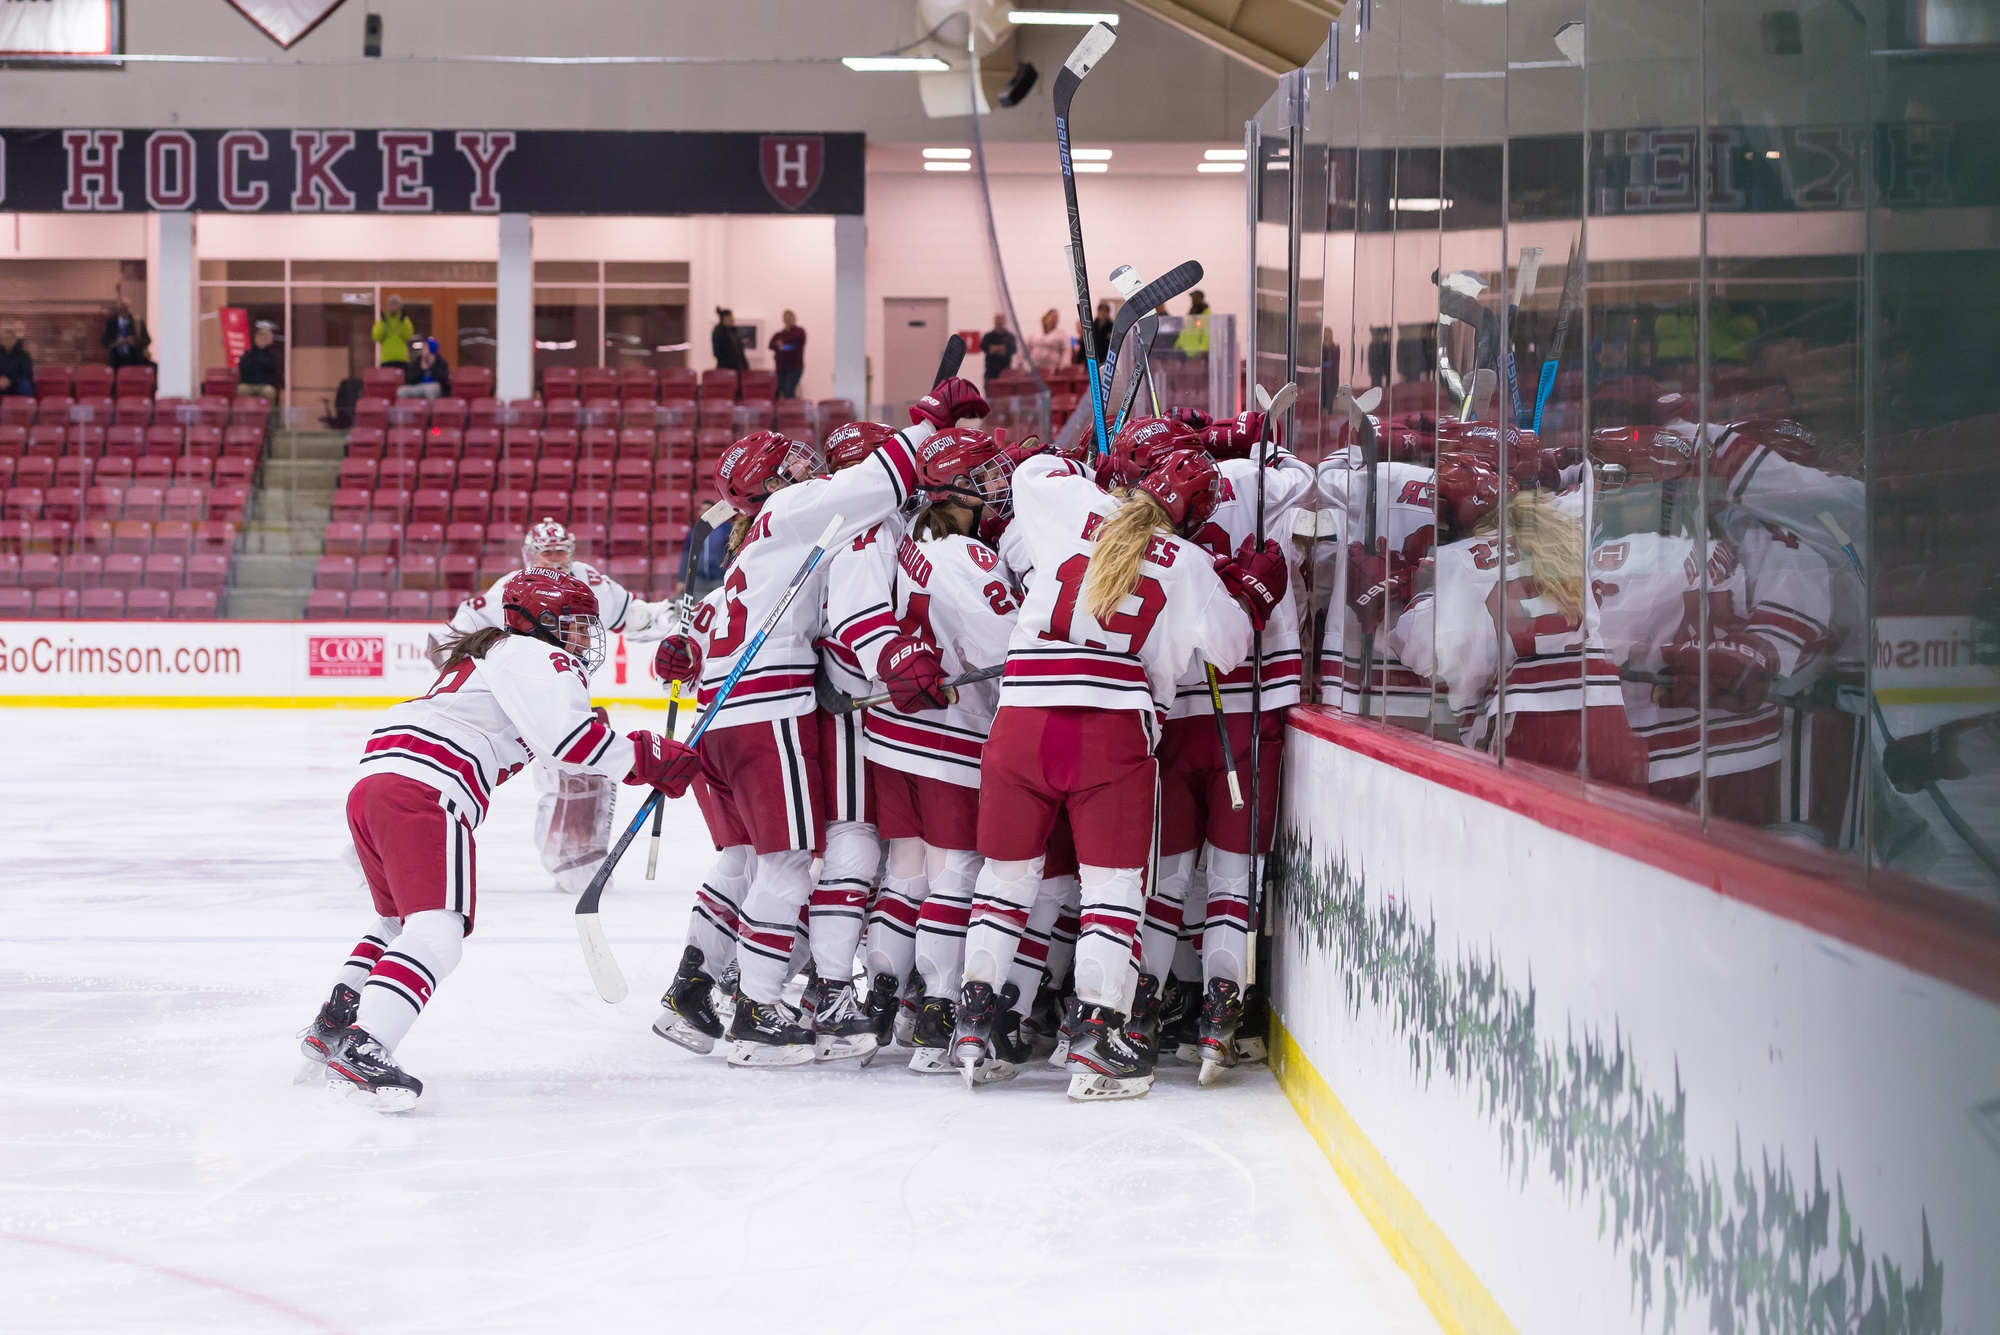 Harvard players sprint from the bench and all parts of the ice to congregate and celebrate Gilmore's OT game-winner, plus an ECAC semifinals berth.